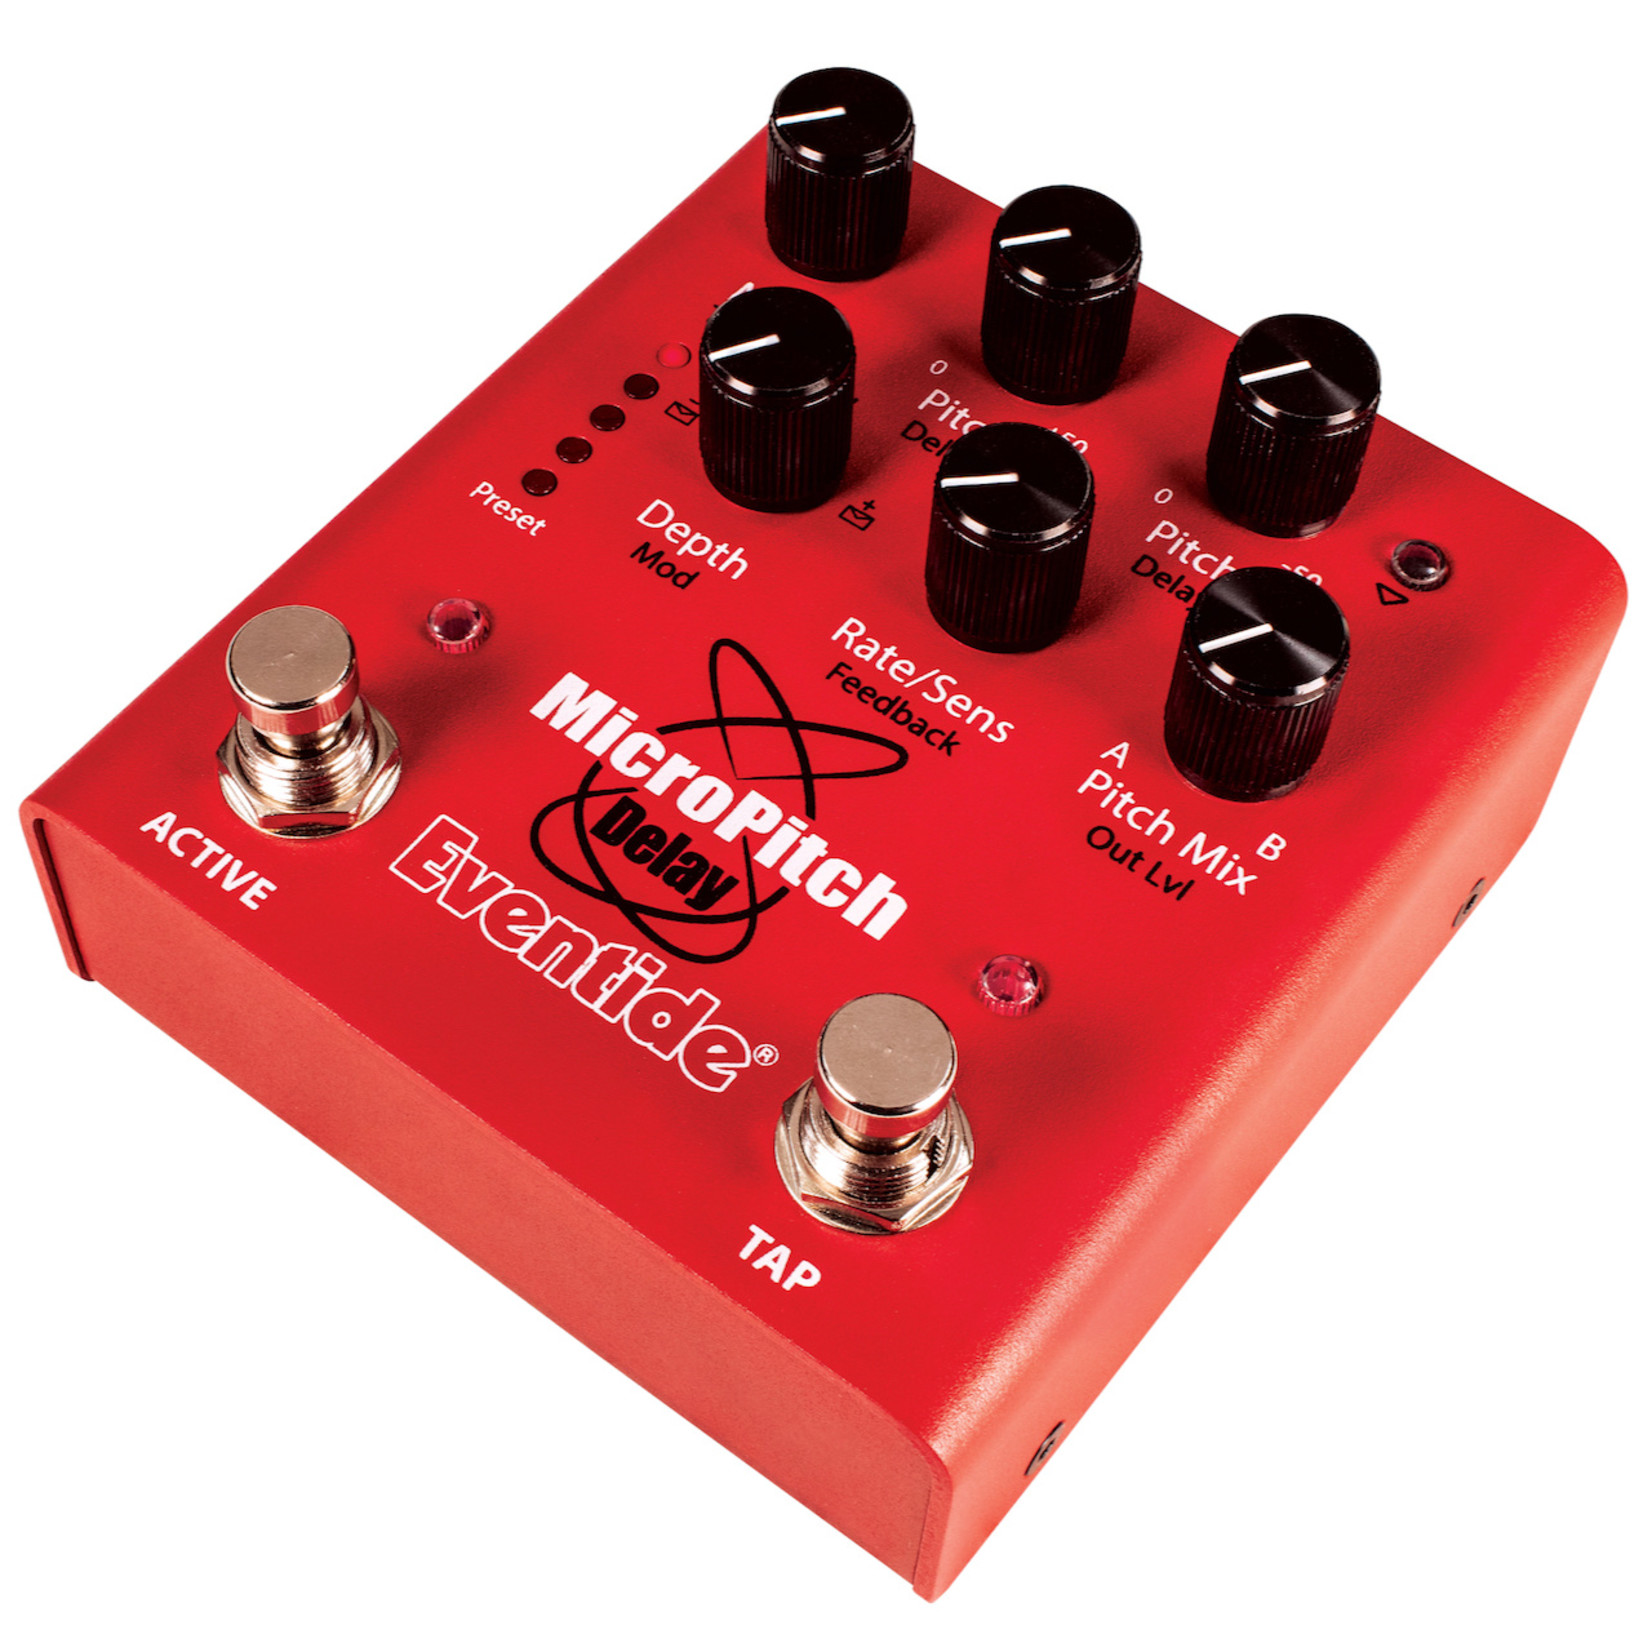 Eventide Eventide MicroPitch Delay - Lush Stereo Detuning, Detuned Delays, Thick Modulation